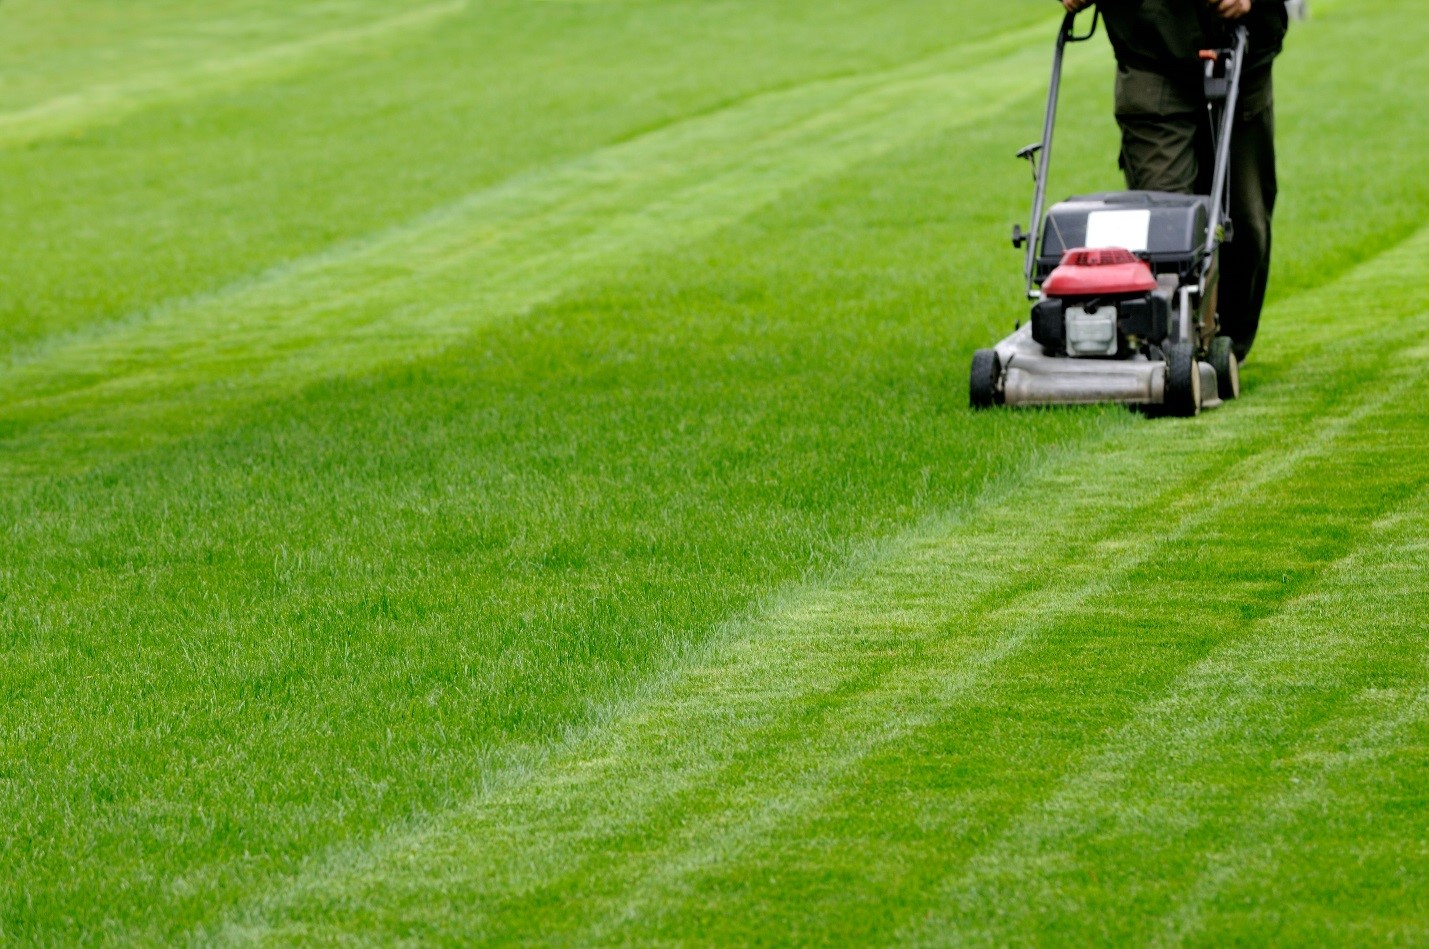 Rely on Lawn Care Service and Simple Steps to Keep That Lawn Lush